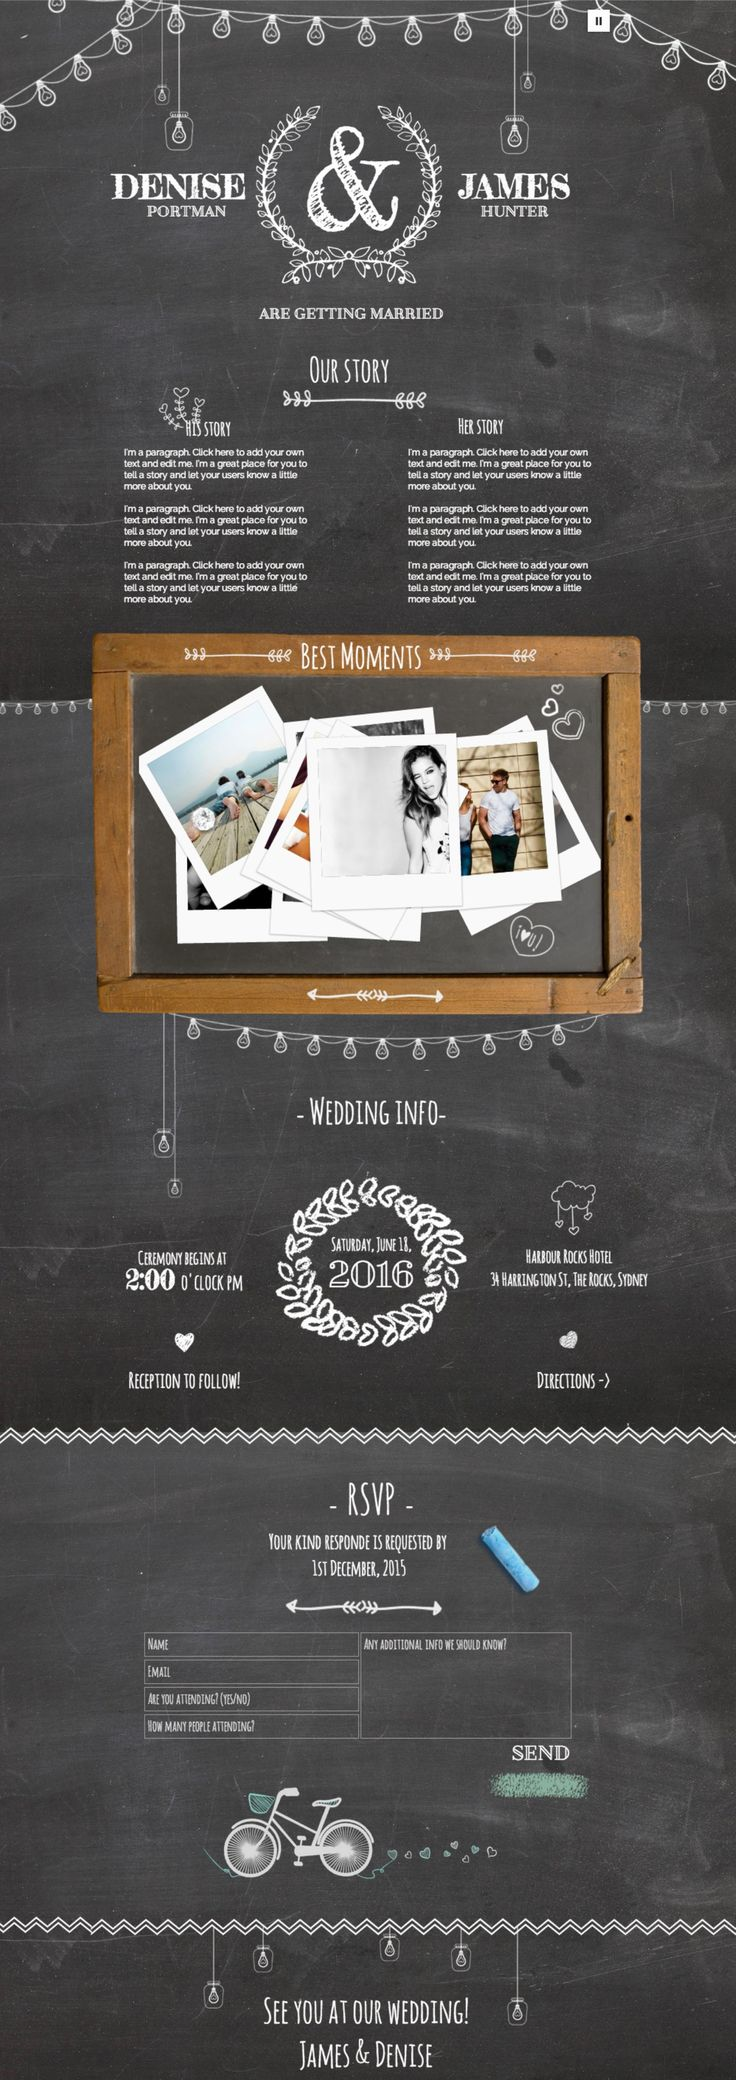 Website Design Ideas 25 trendy web designs for your inspiration Chalk Board Wedding Website Design Is New For 2015